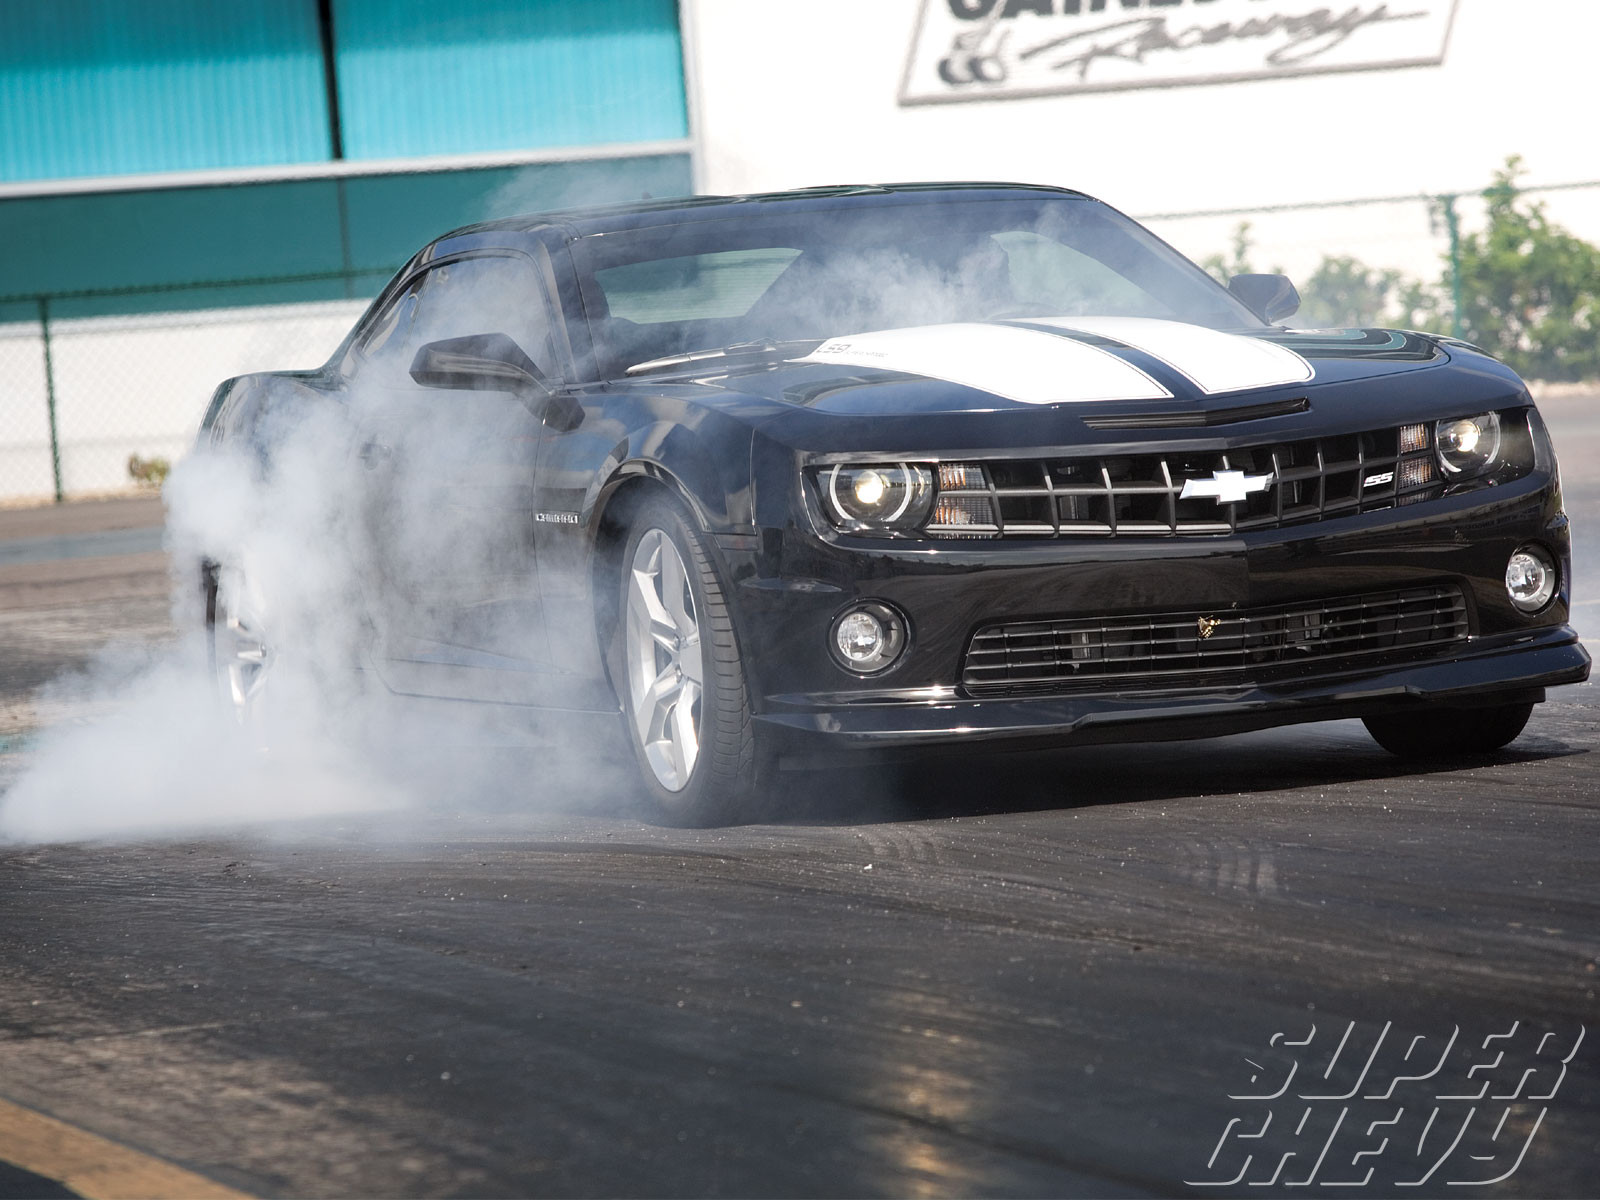 Sucp_1102_01_o Nesmith_storm_chevrolet_camaro_ls9 Passenger_side_front_burnout_view